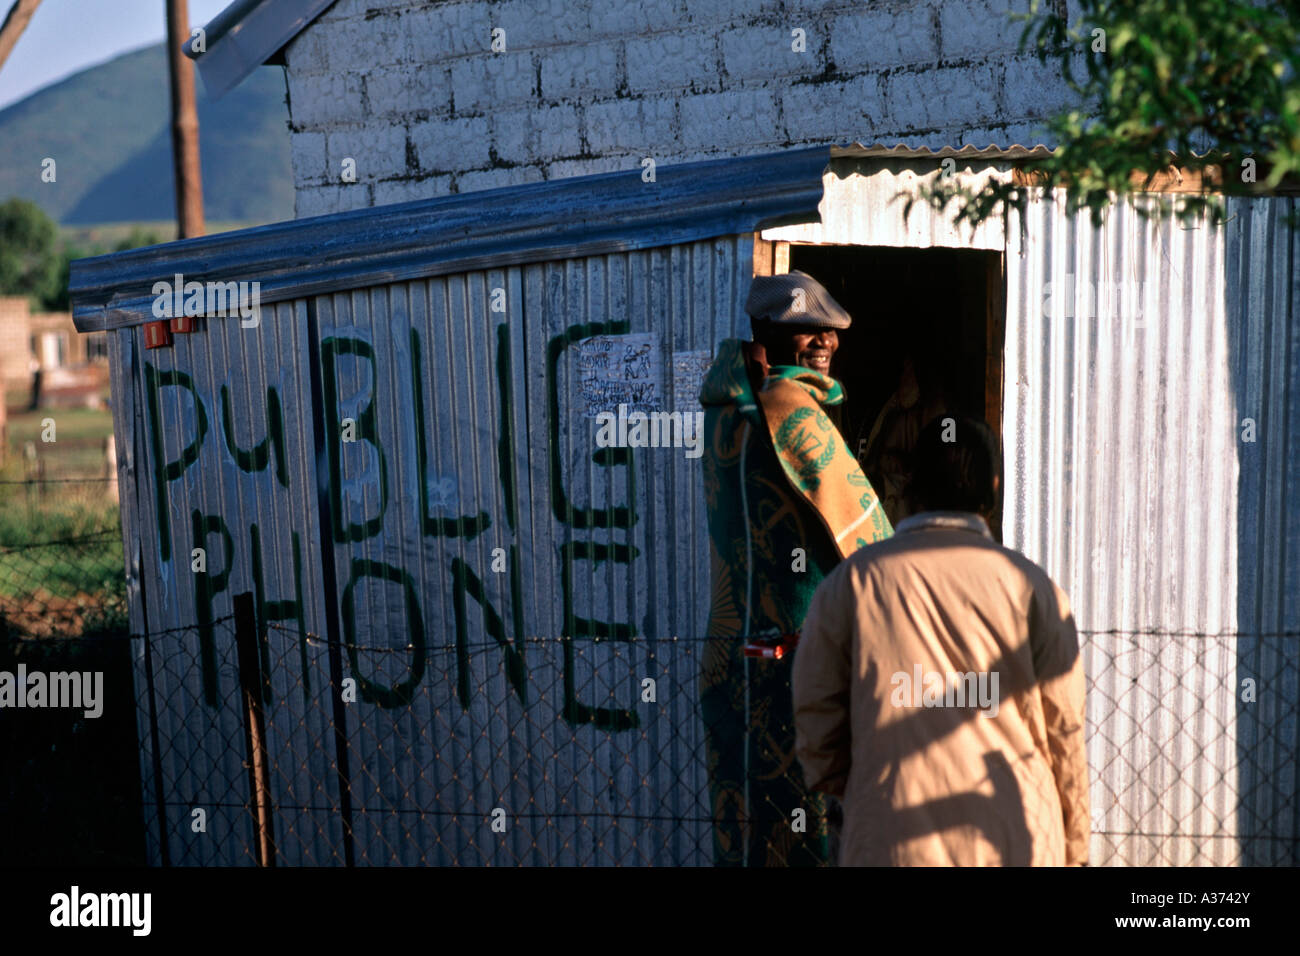 Basotho villagers from Semonkong queue to use a telephone in a makeshift public telephone kiosk in the mountains - Stock Image